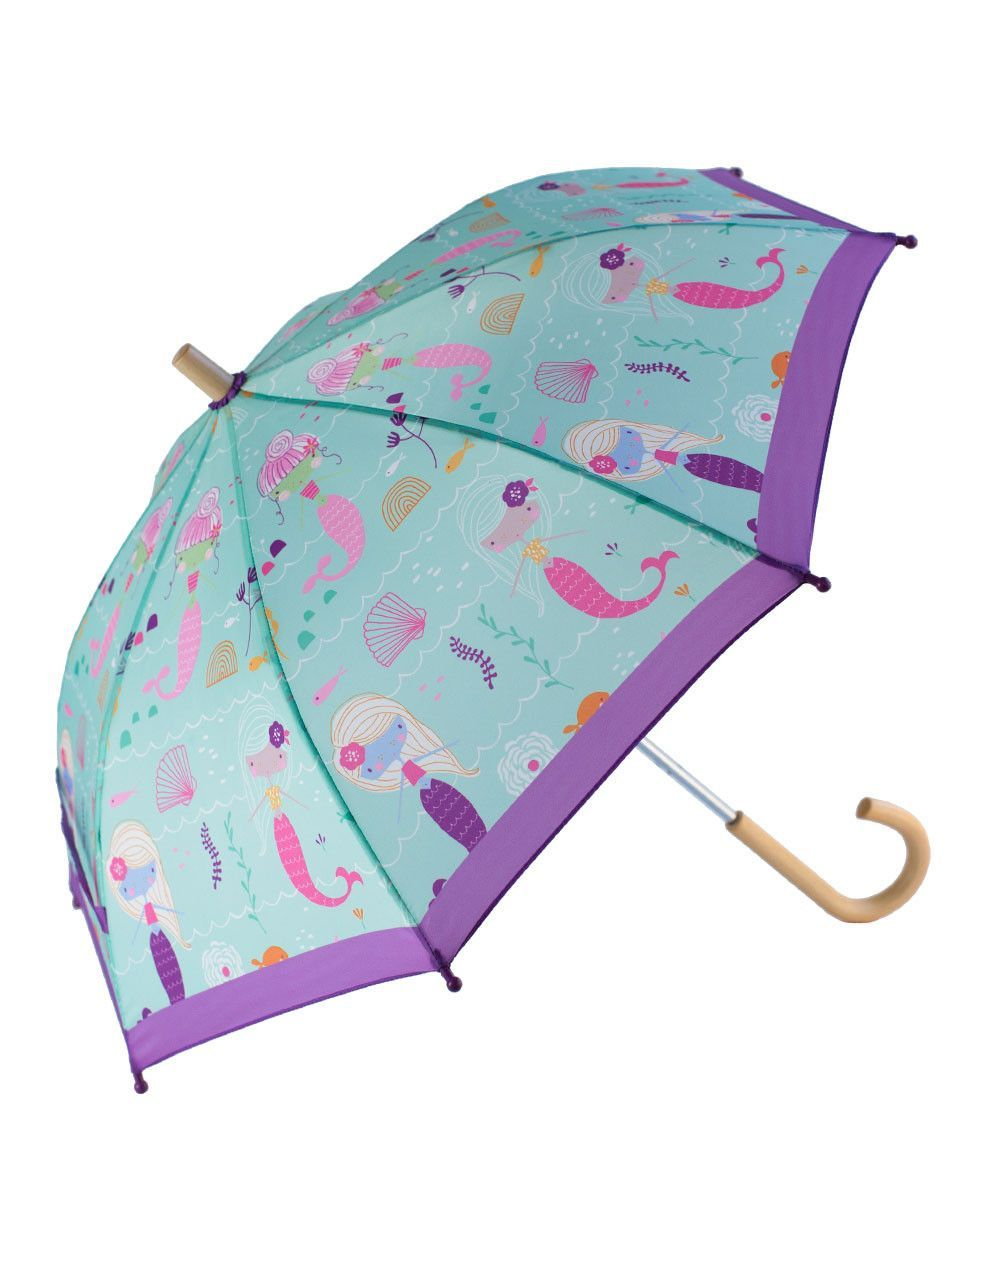 This umbrella is the best accessory for